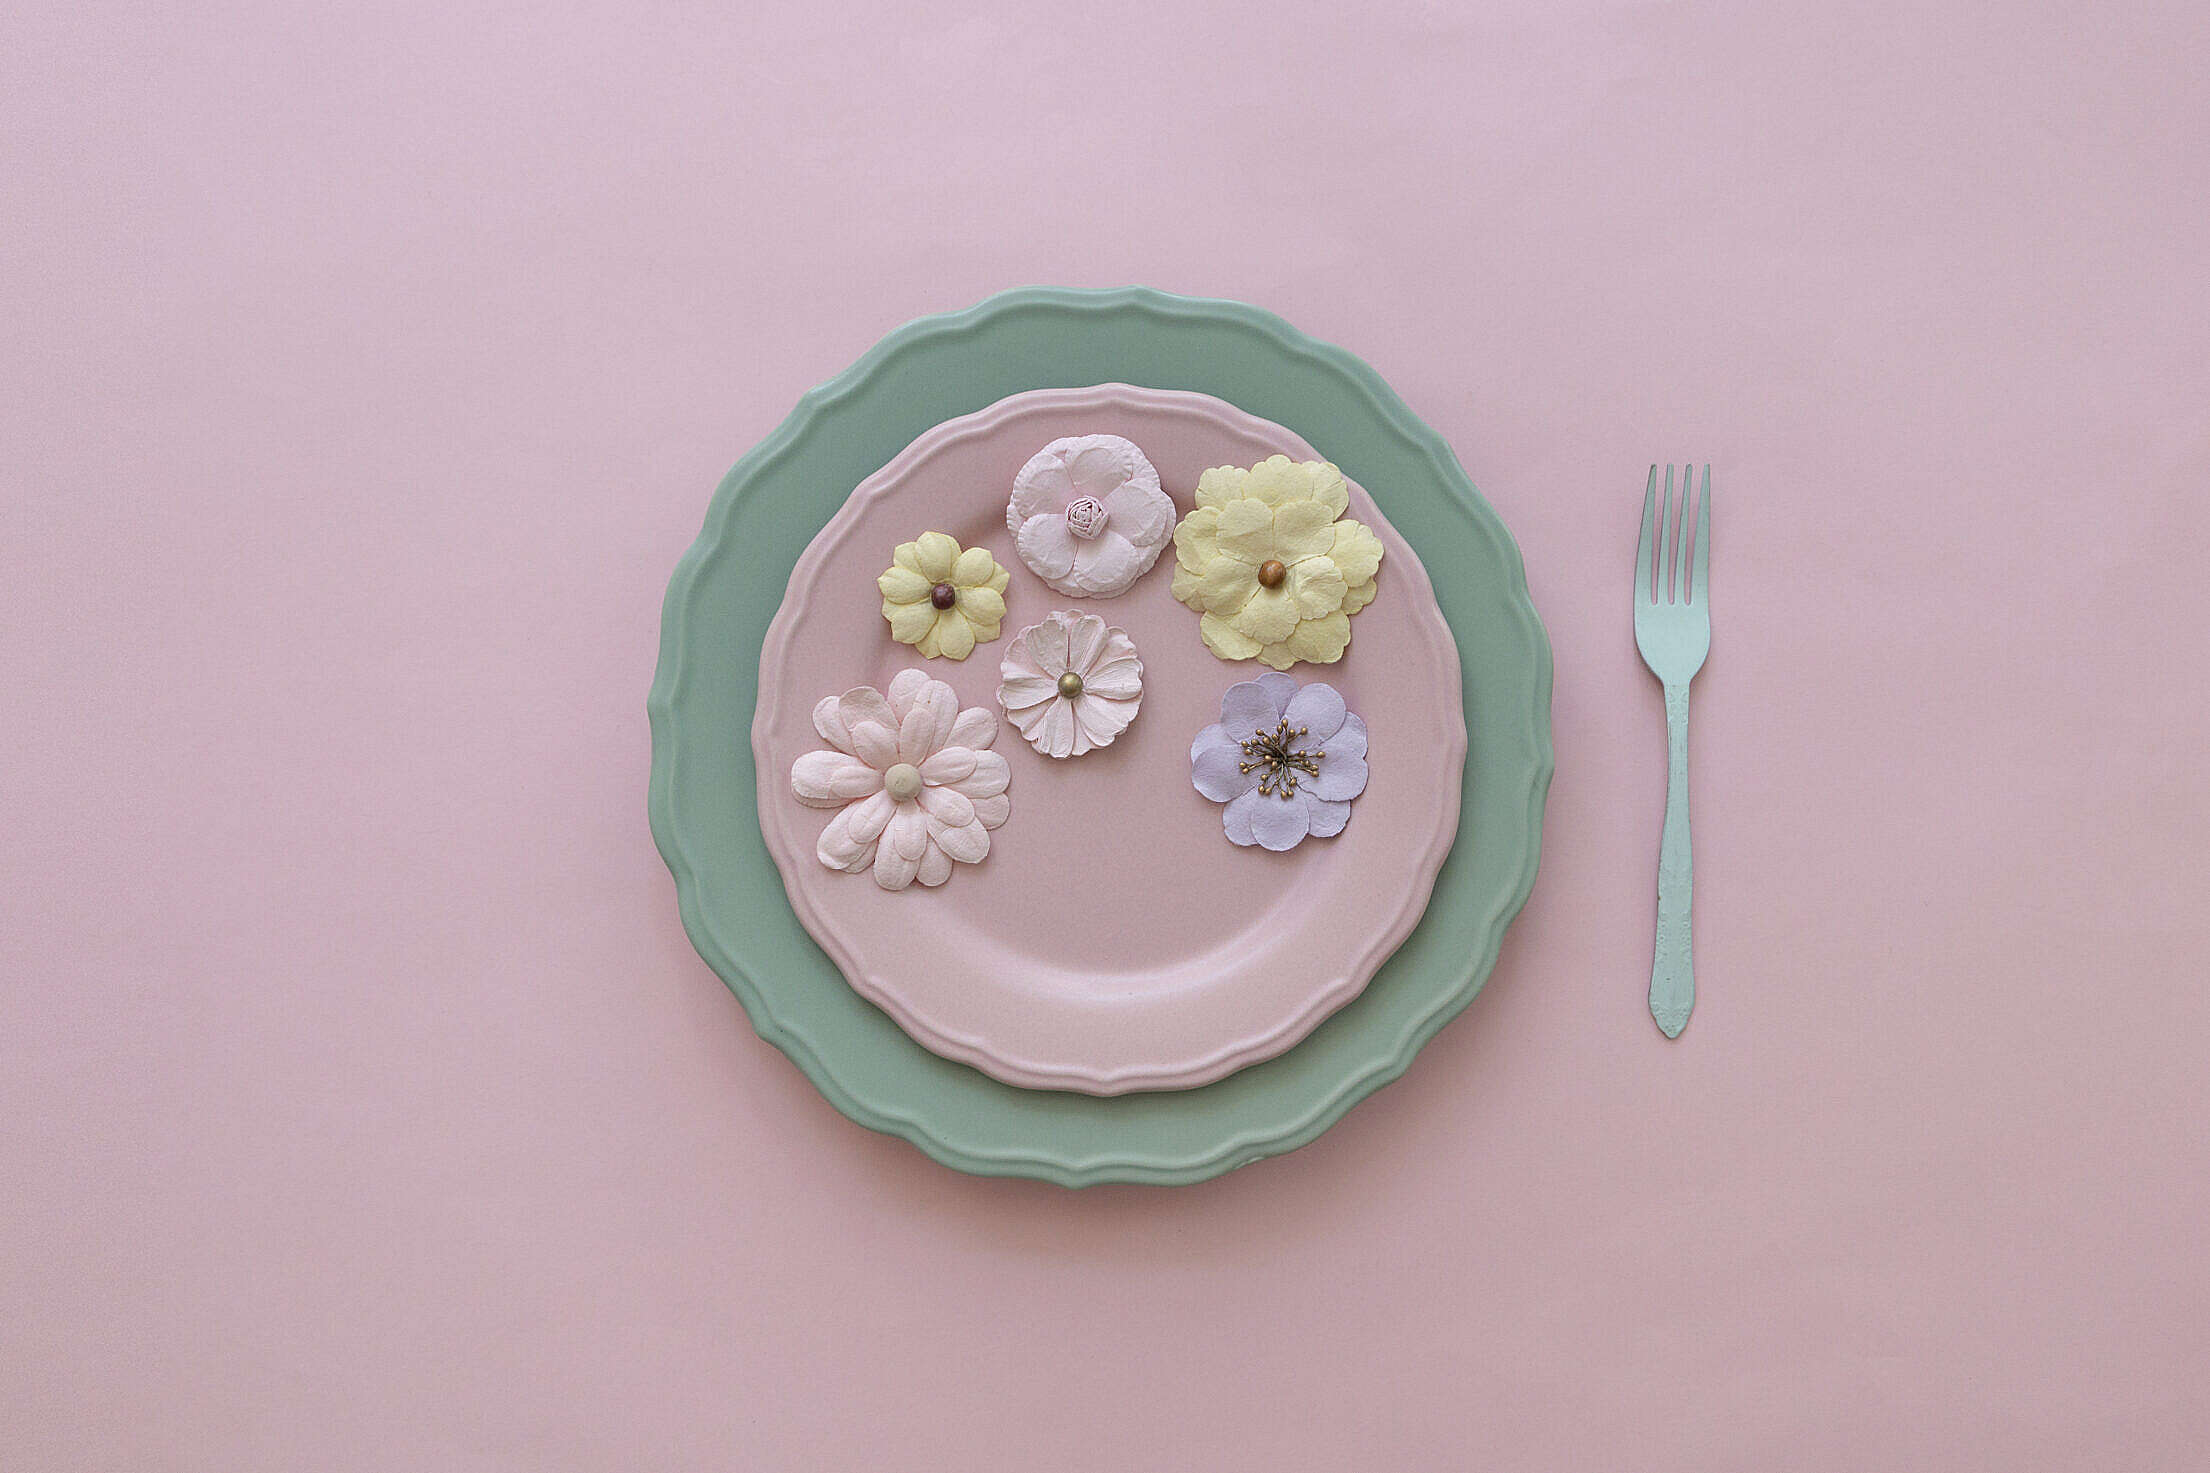 Beautiful Vintage Plate with Flowers Free Stock Photo